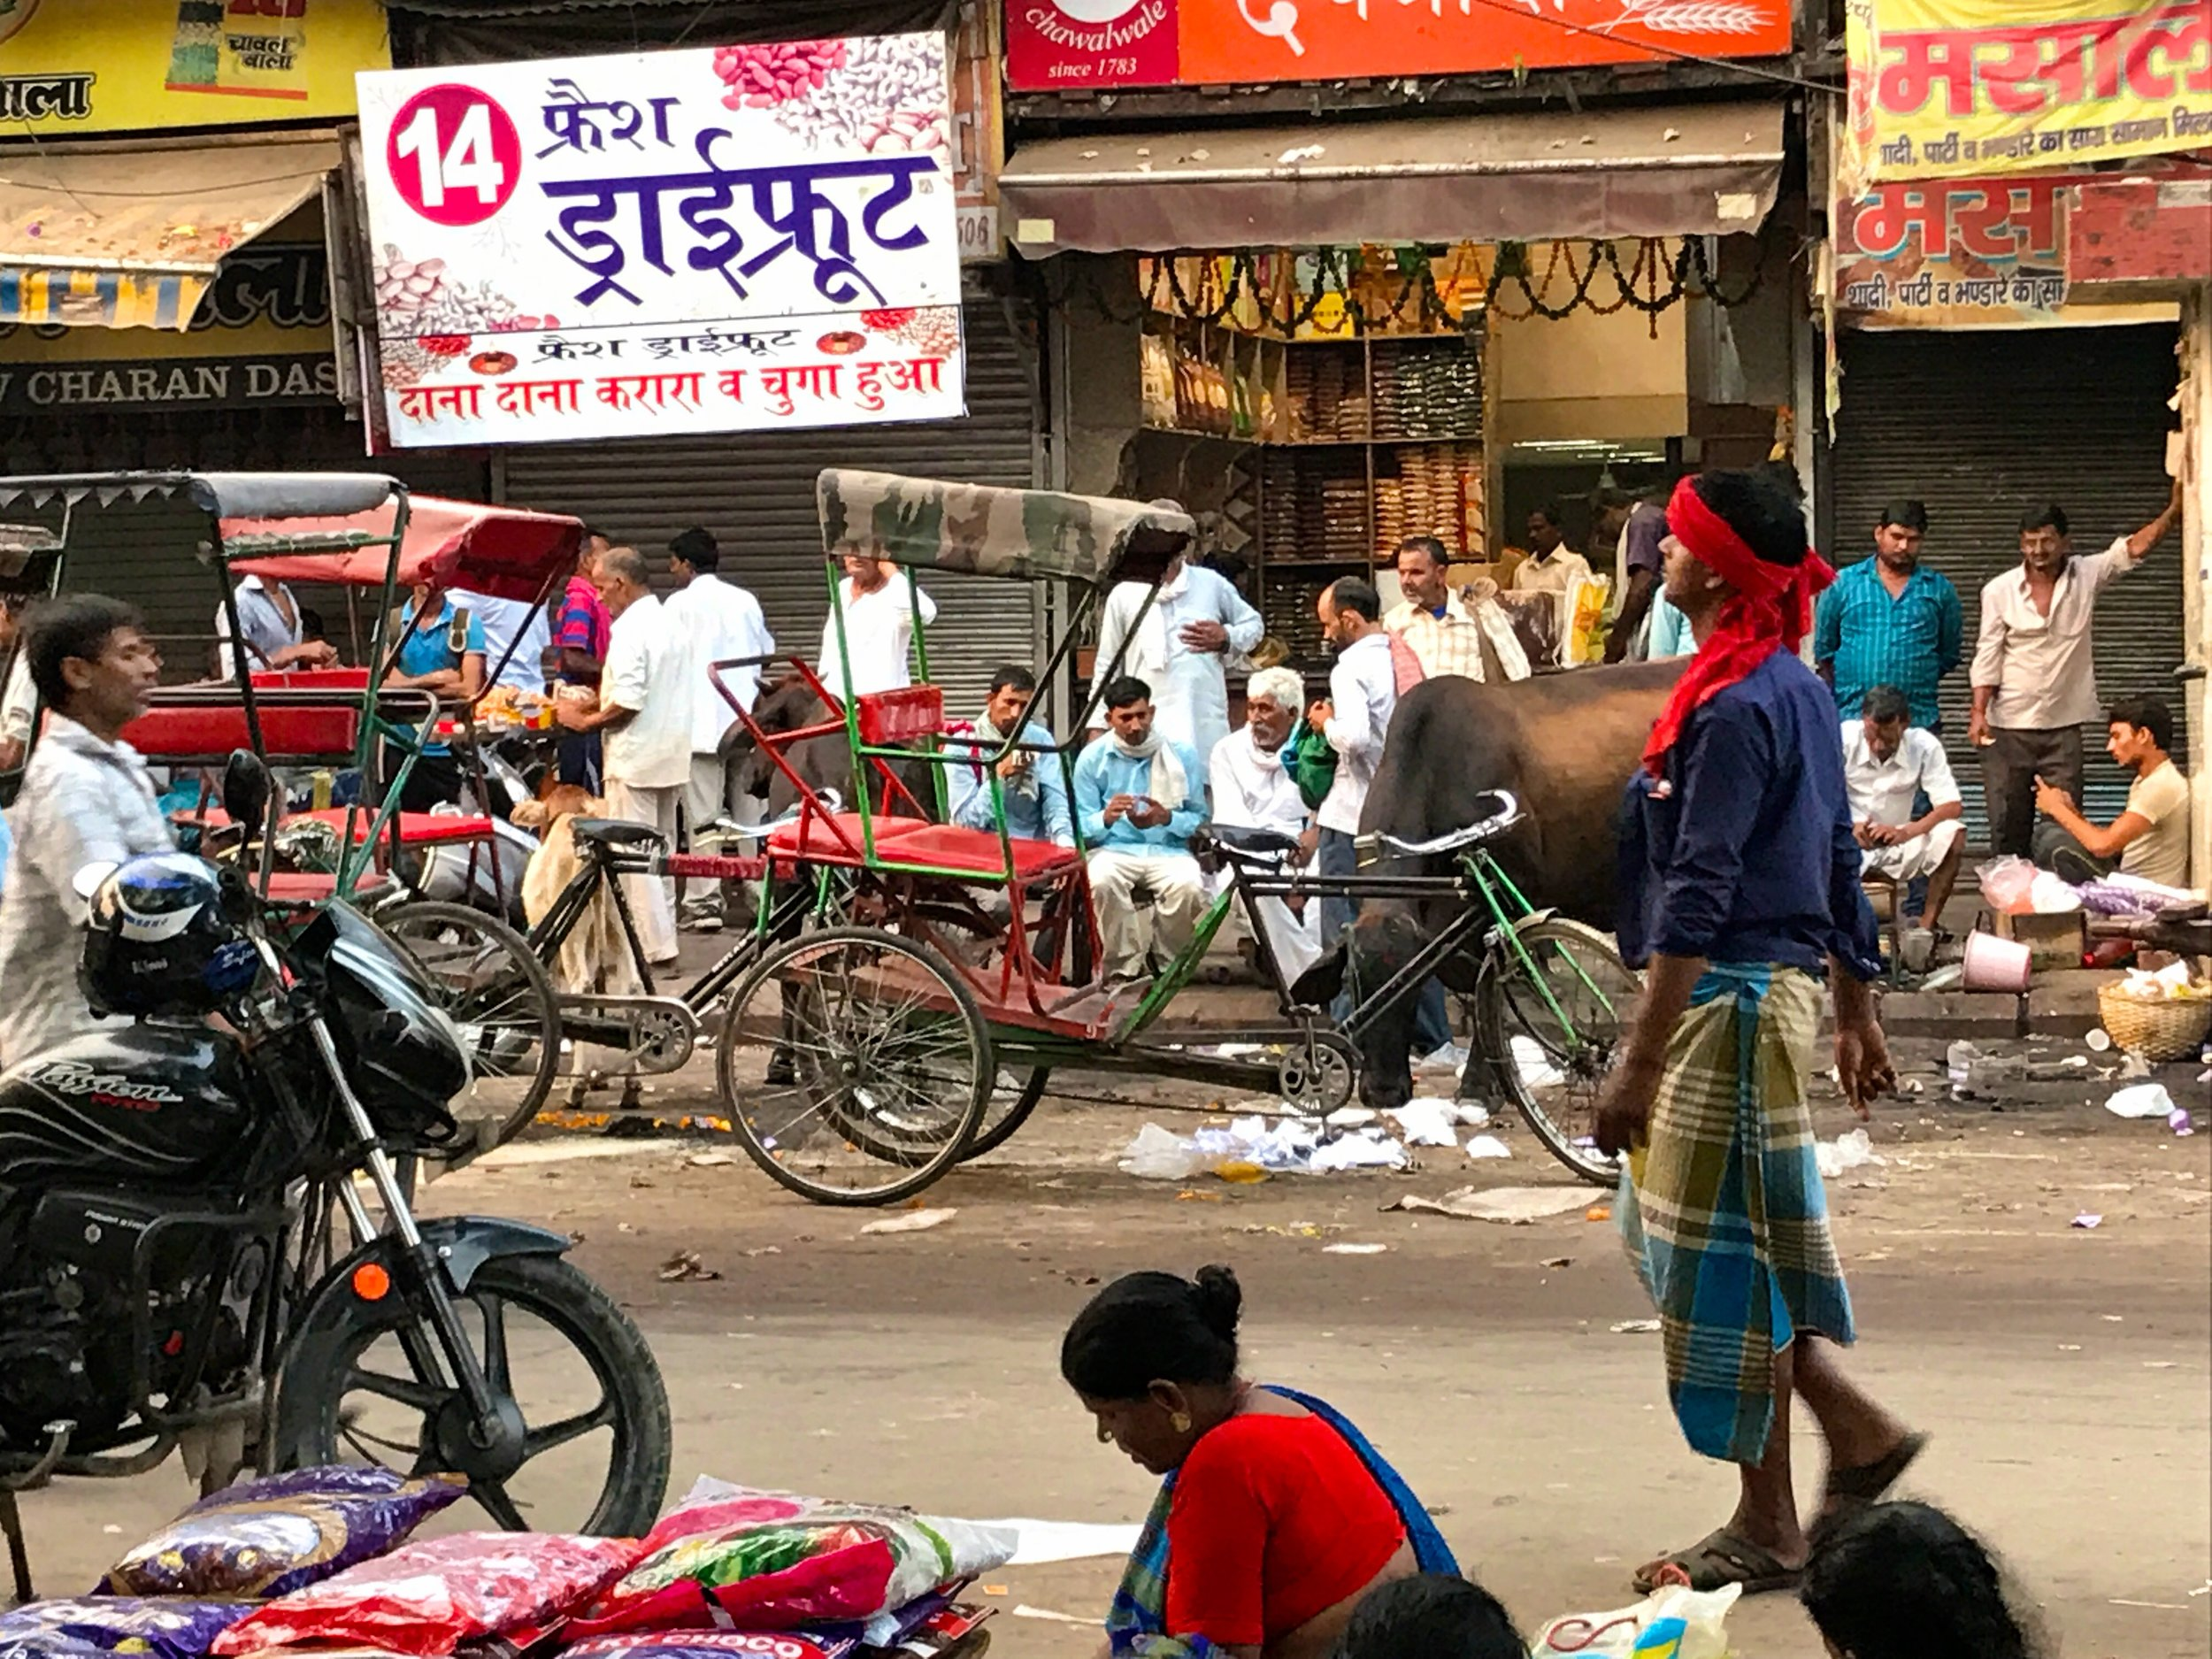 Chandni Chowk, Old New Dehli, India